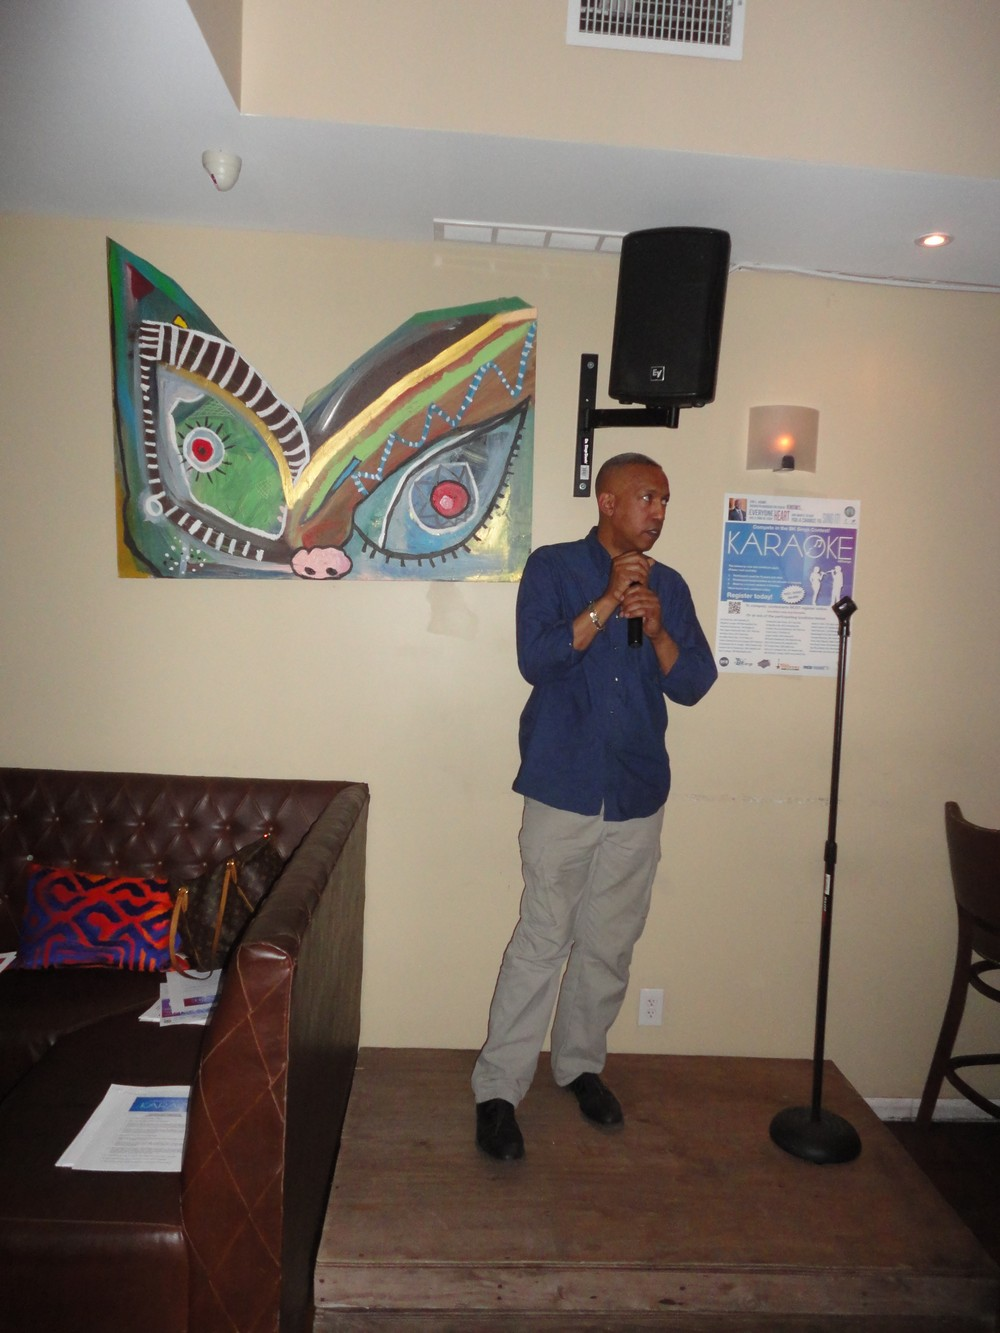 Karaoke 2016 brooklyn borough hall official site for Boro kitchen cabinets inc